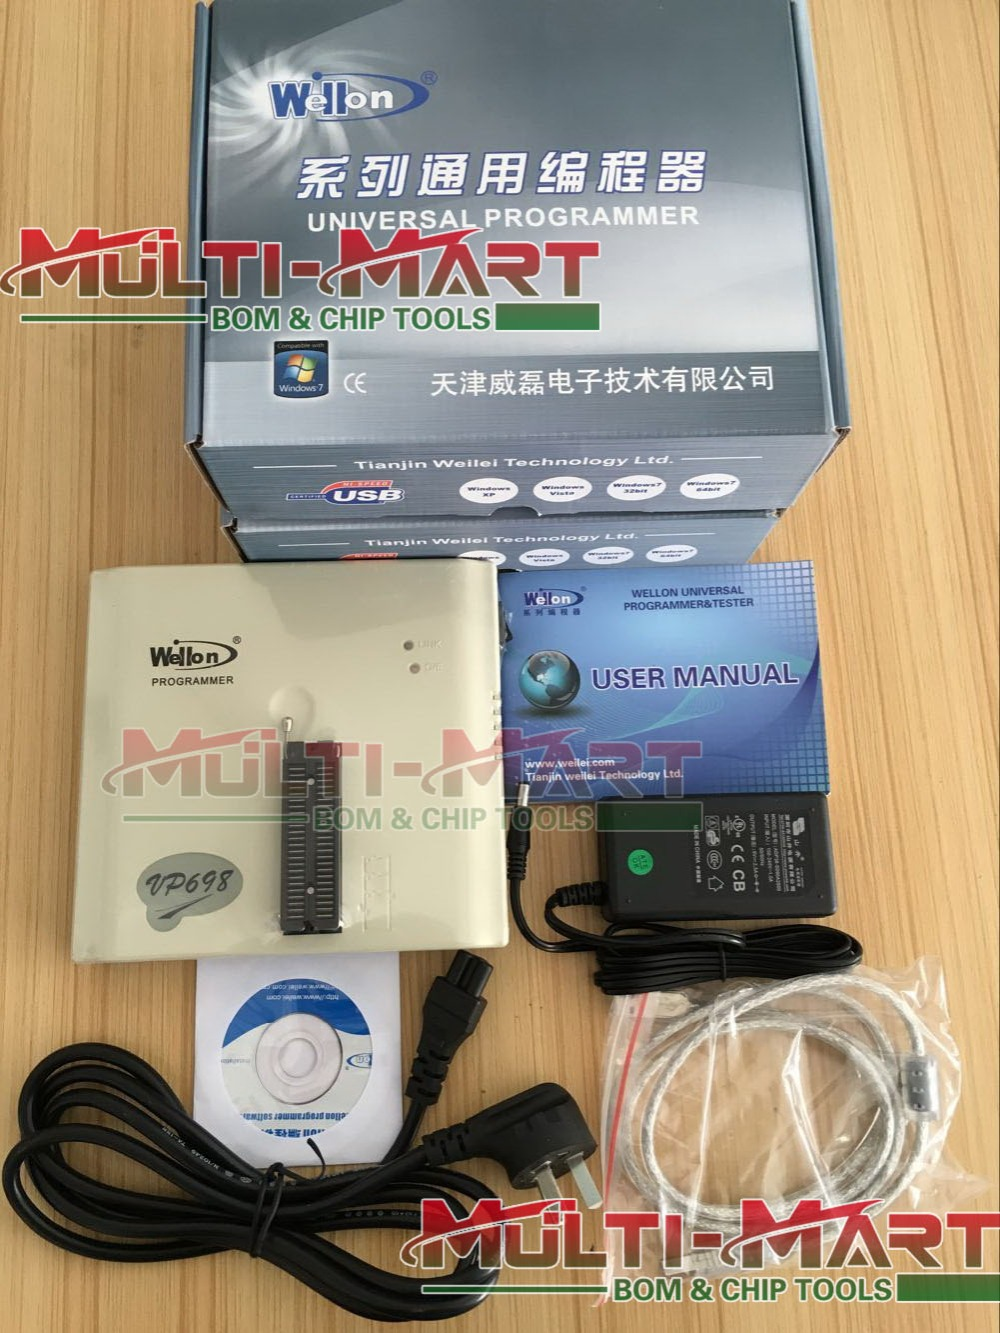 mmm-tech.com: Genuine - Wellon VP-698 / Weilei VP698 universal programmer (upgraded version VP-496 VP496) Multi-Mart Electronics Technology Co., Limited store